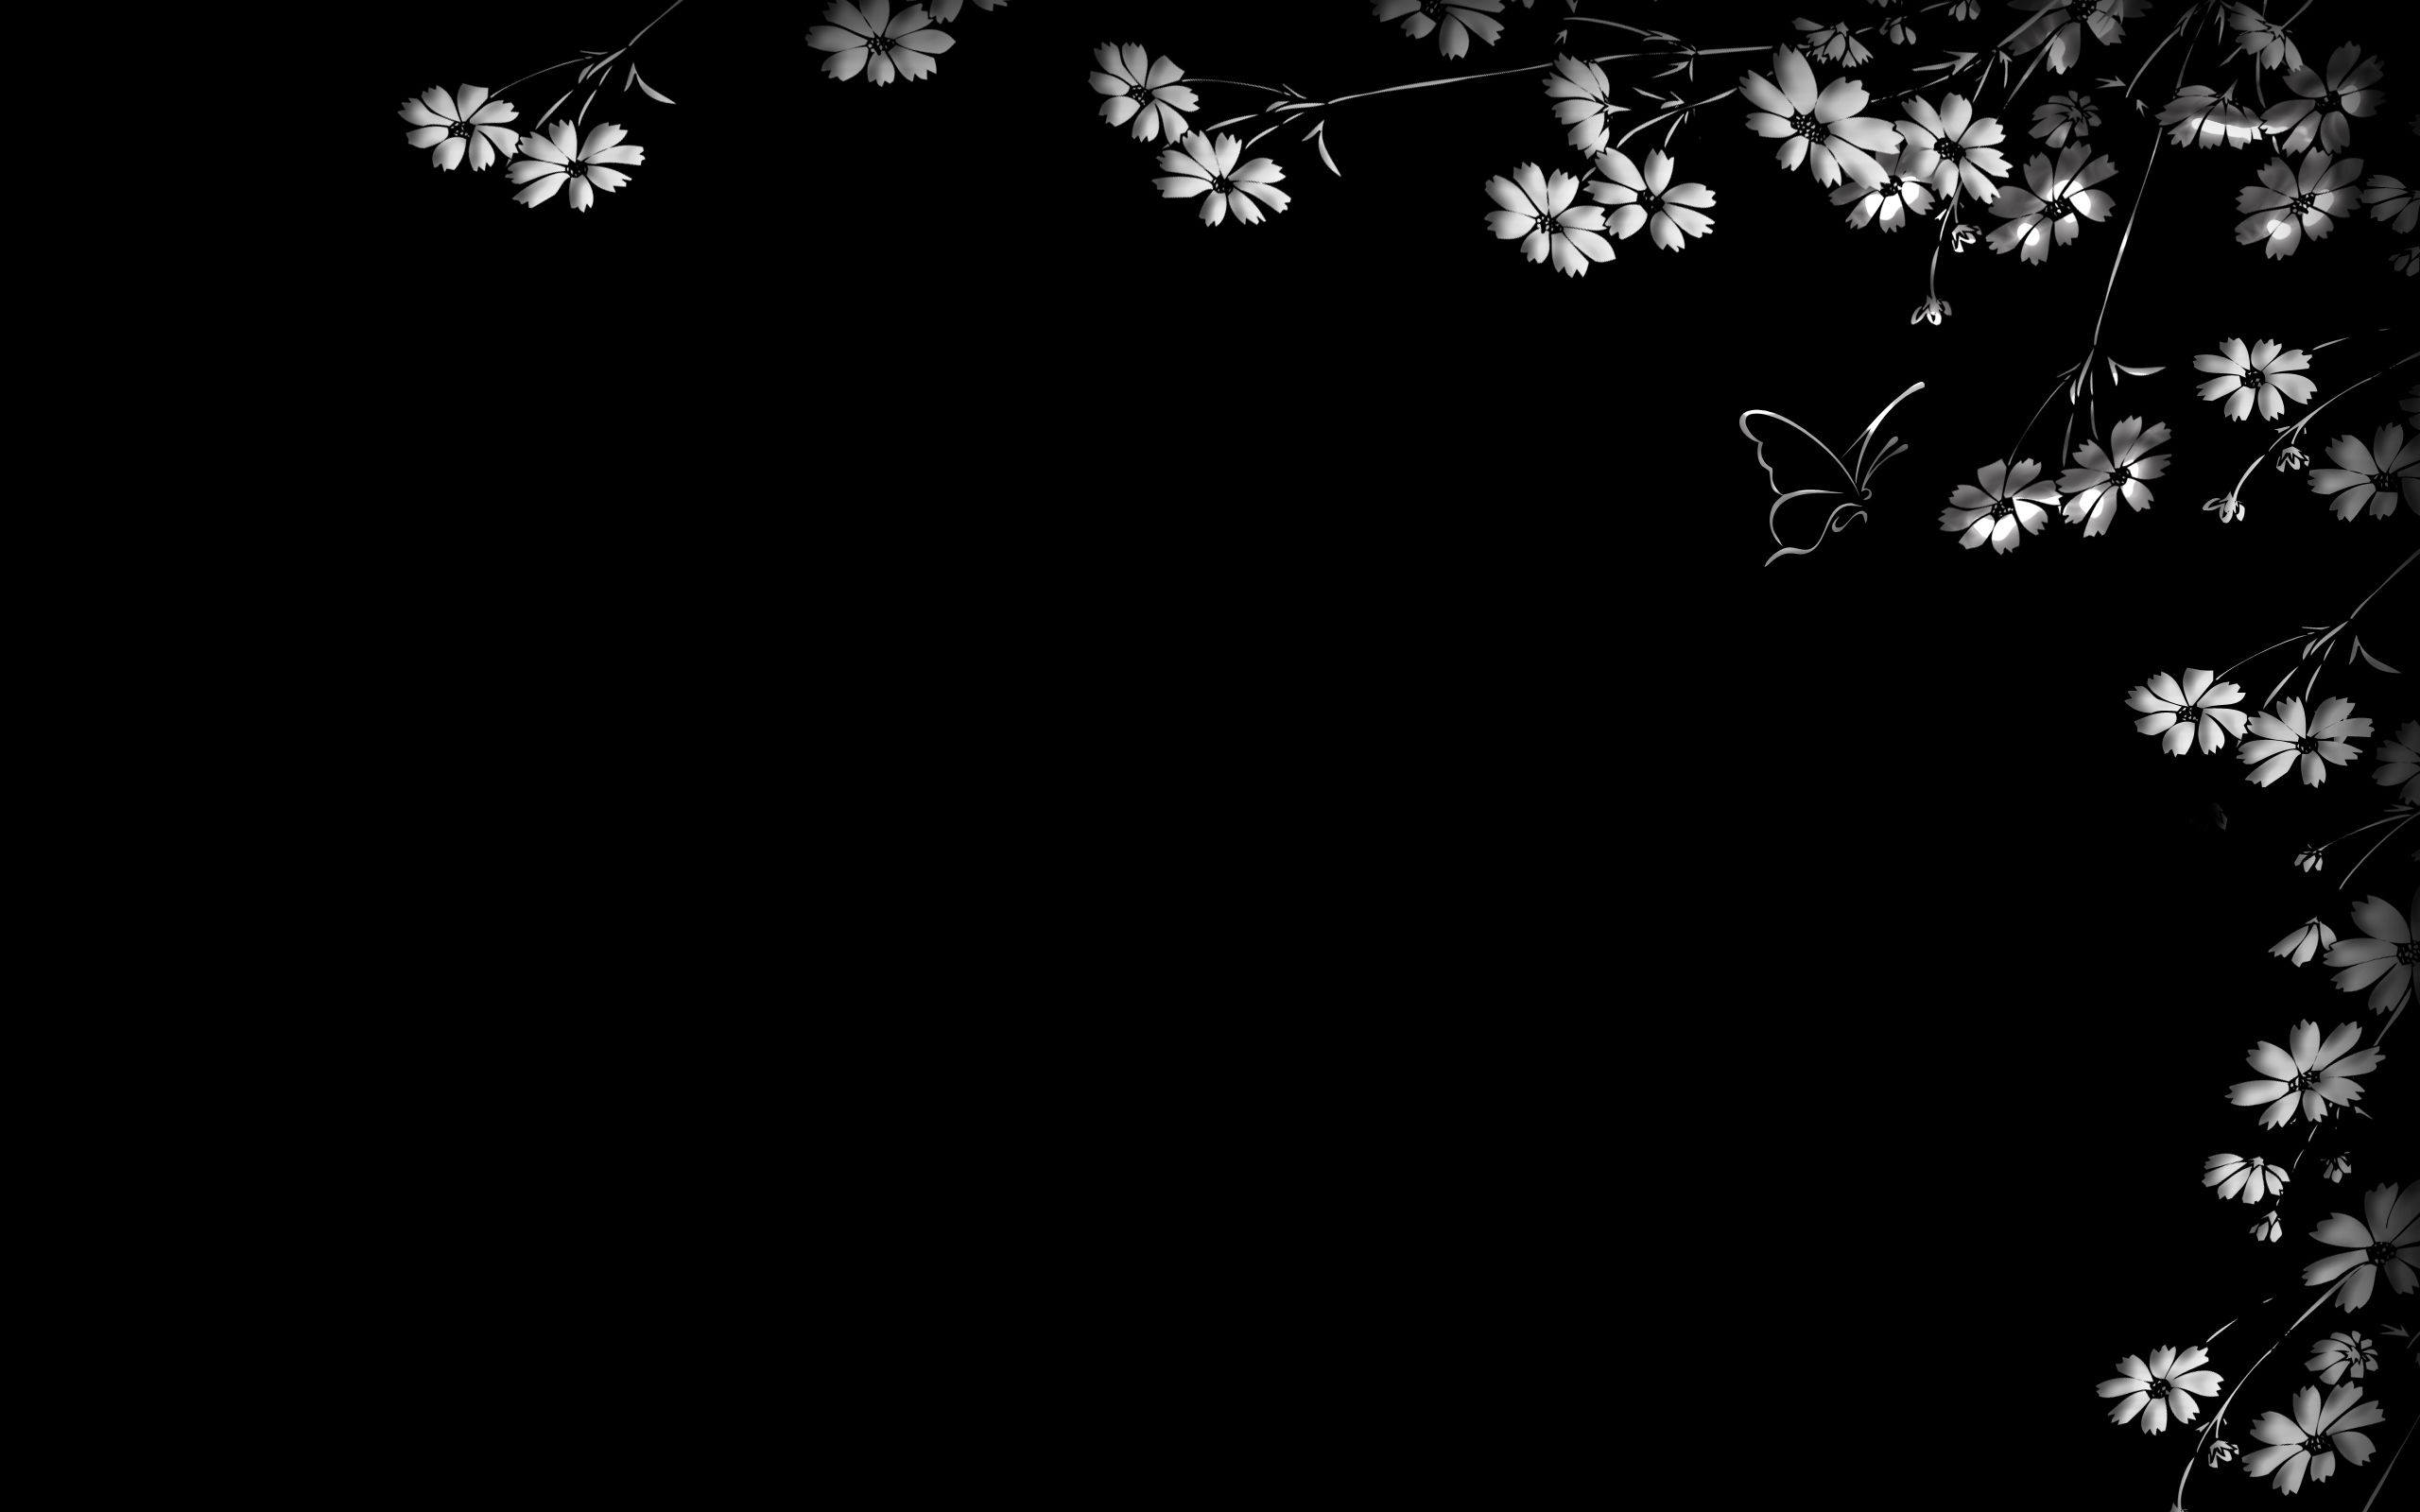 Amazing Black And White Wallpapers Tags Erflies Flowers Frame